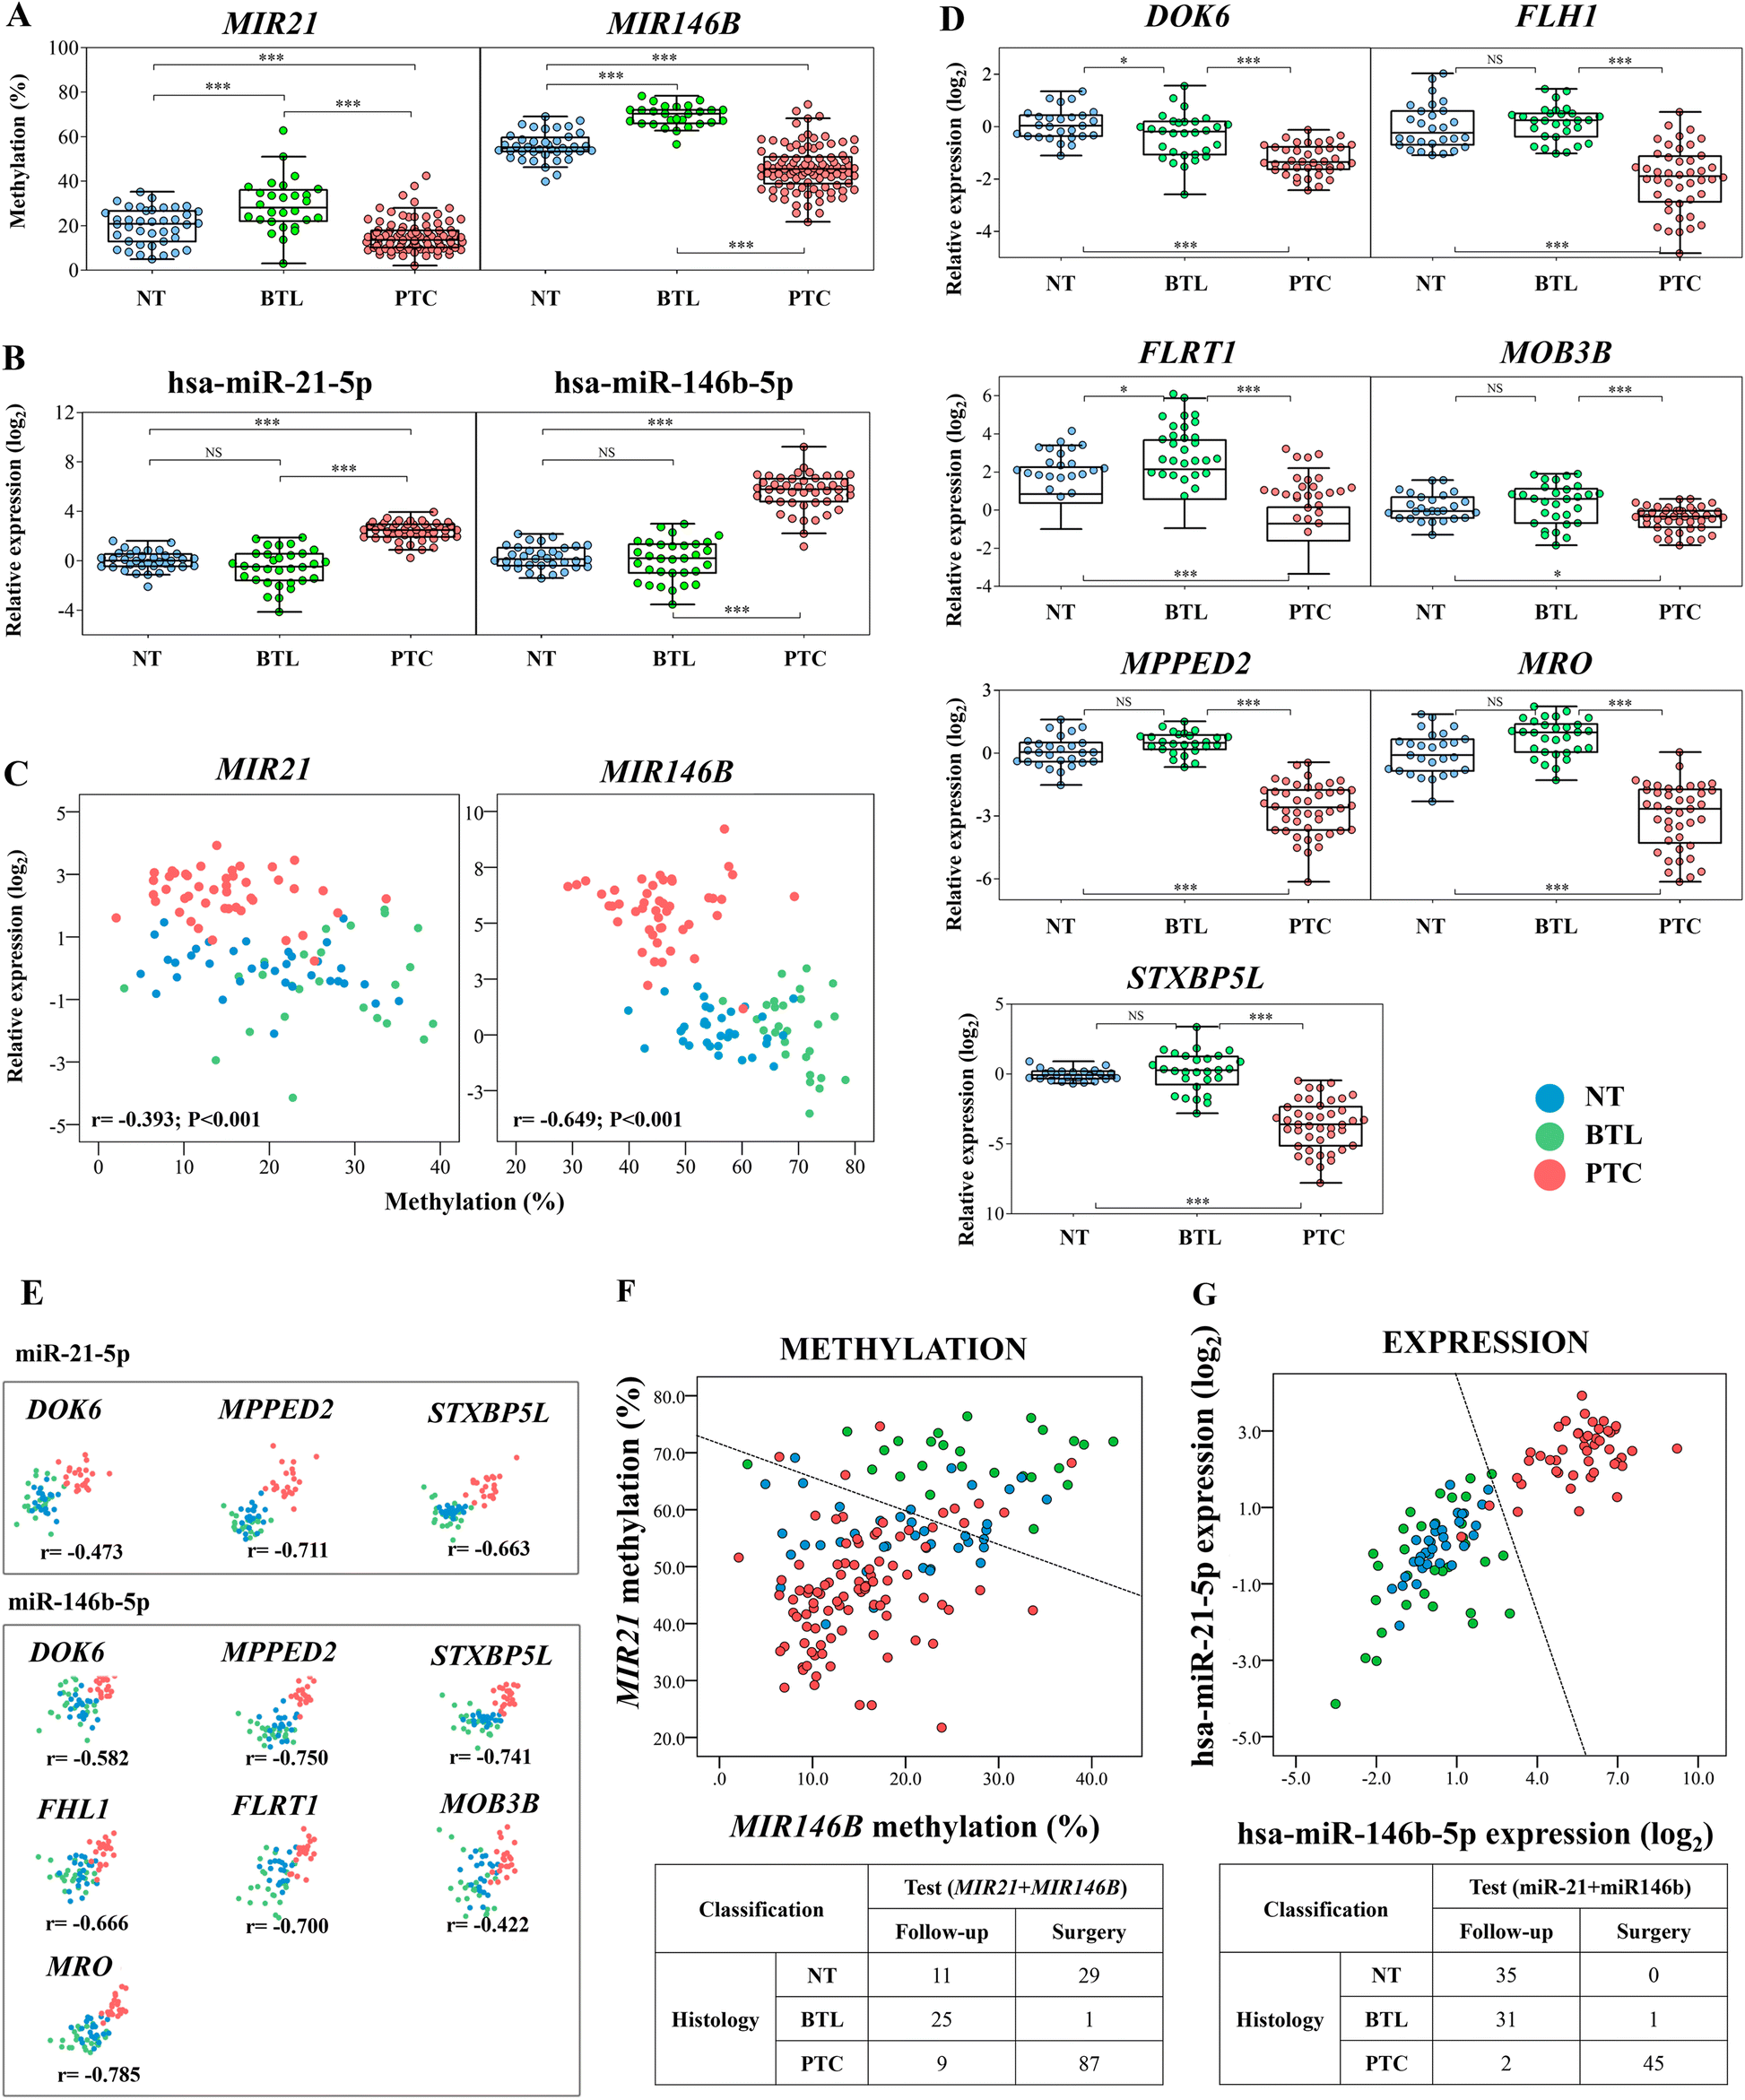 Loss of DNA methylation is related to increased expression